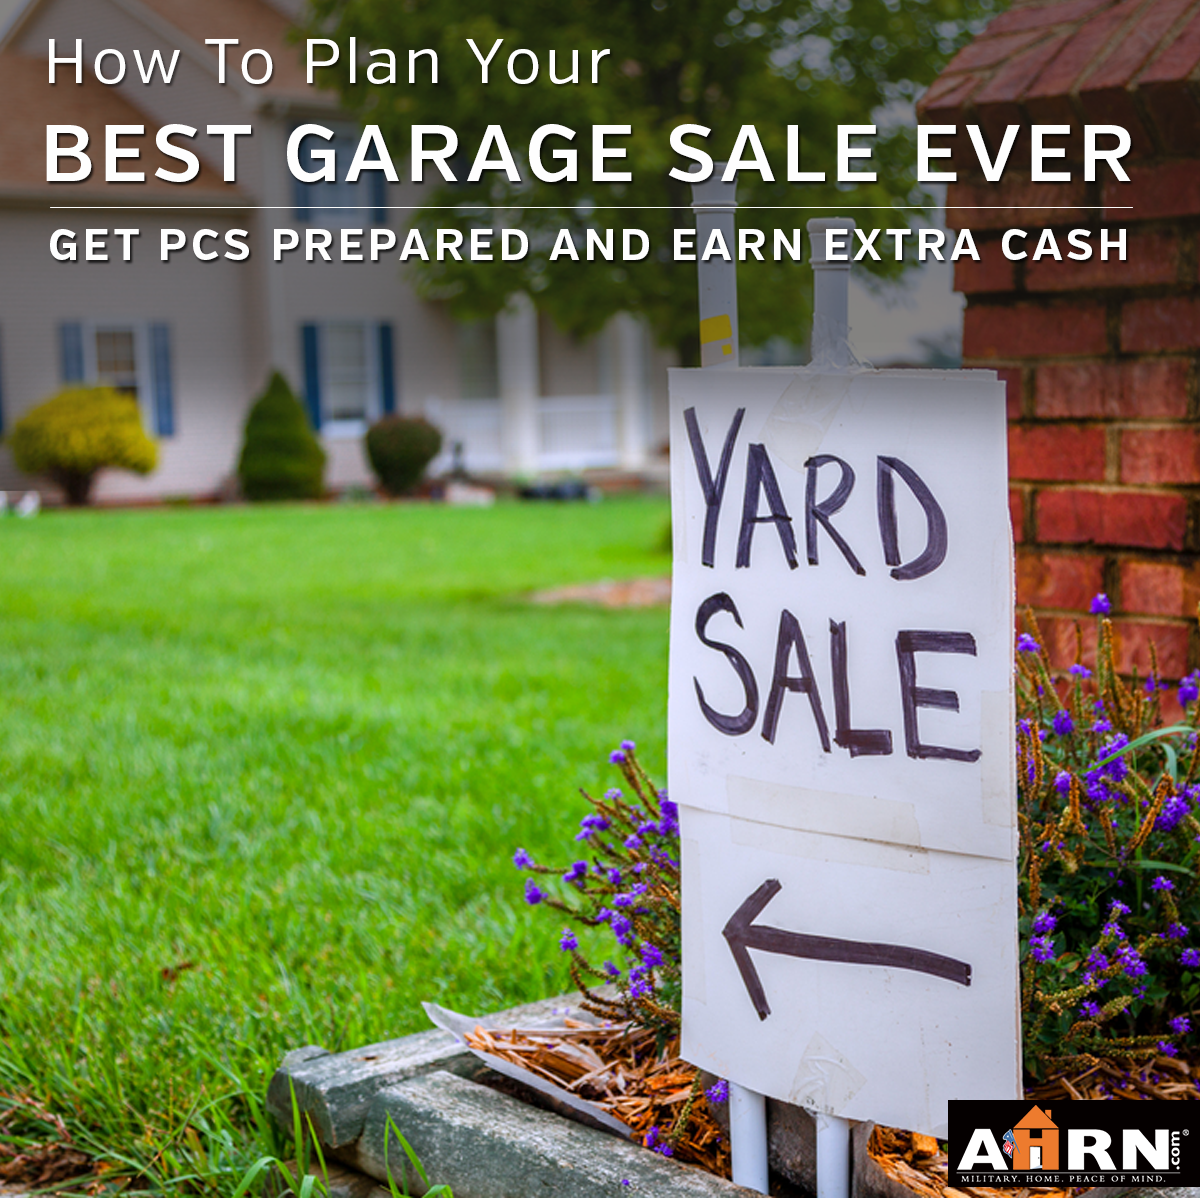 How To Have The Best Garage Sale Ever – How To Plan A Garage Sale